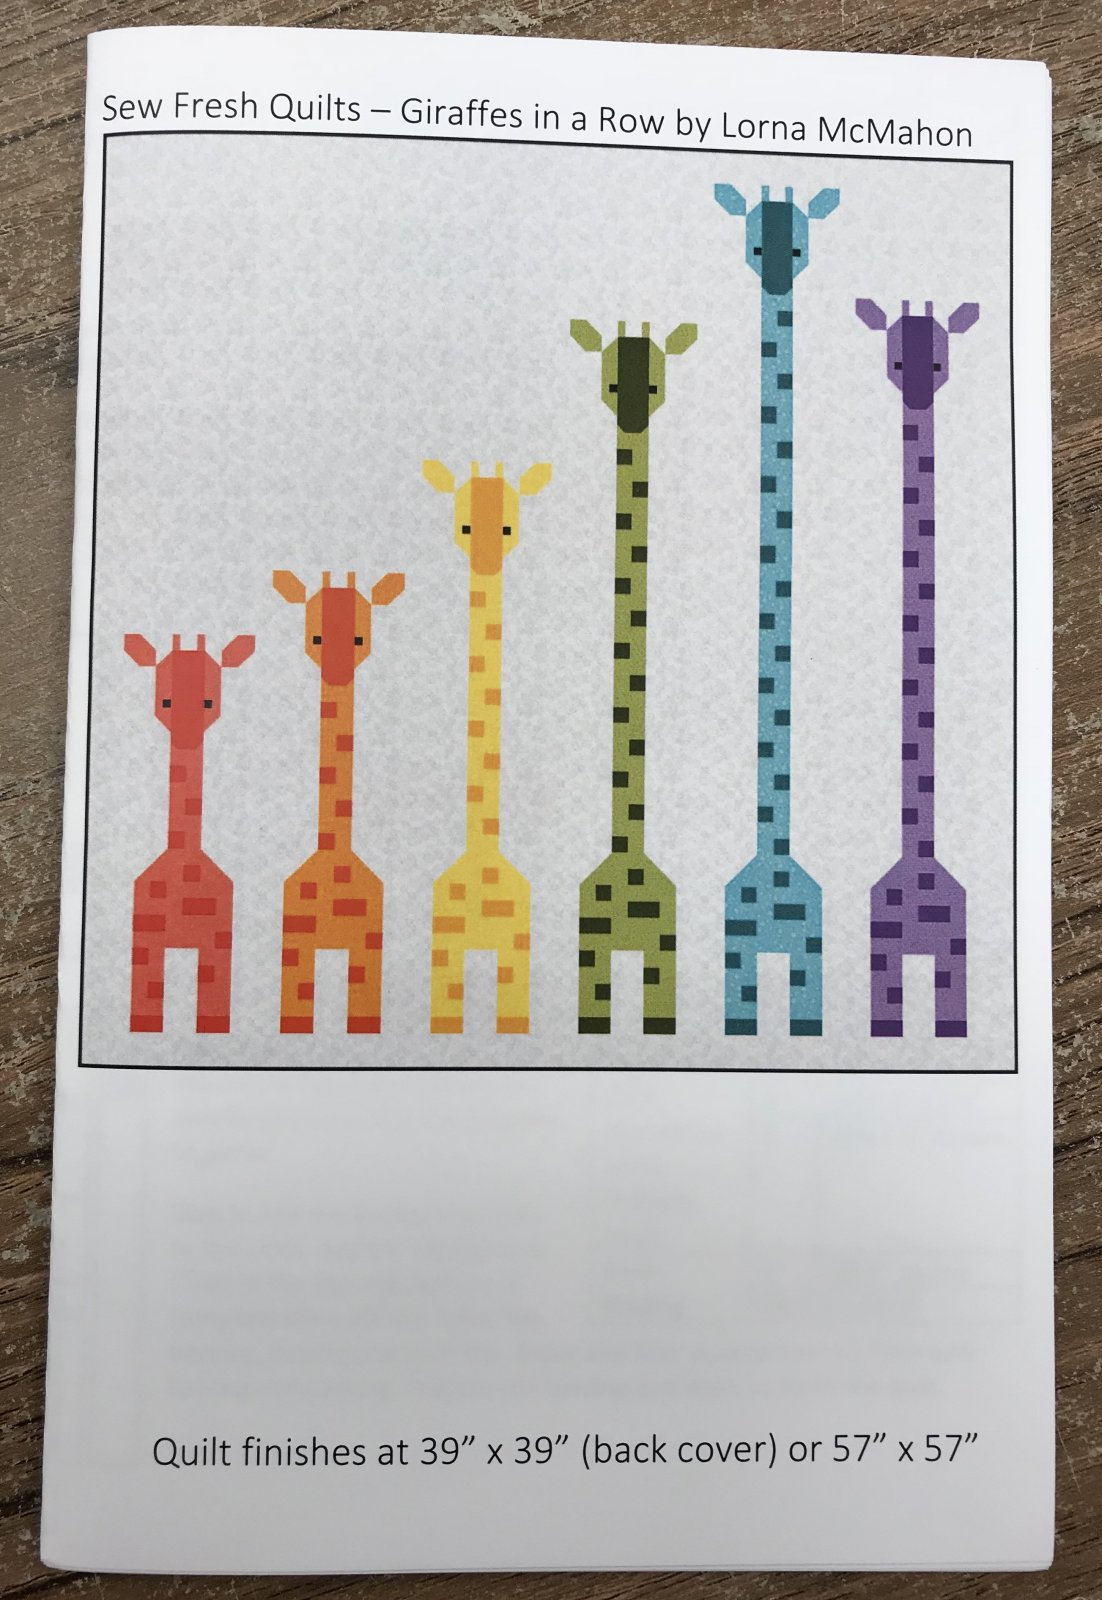 Giraffes in a Row by Lorna McMahon